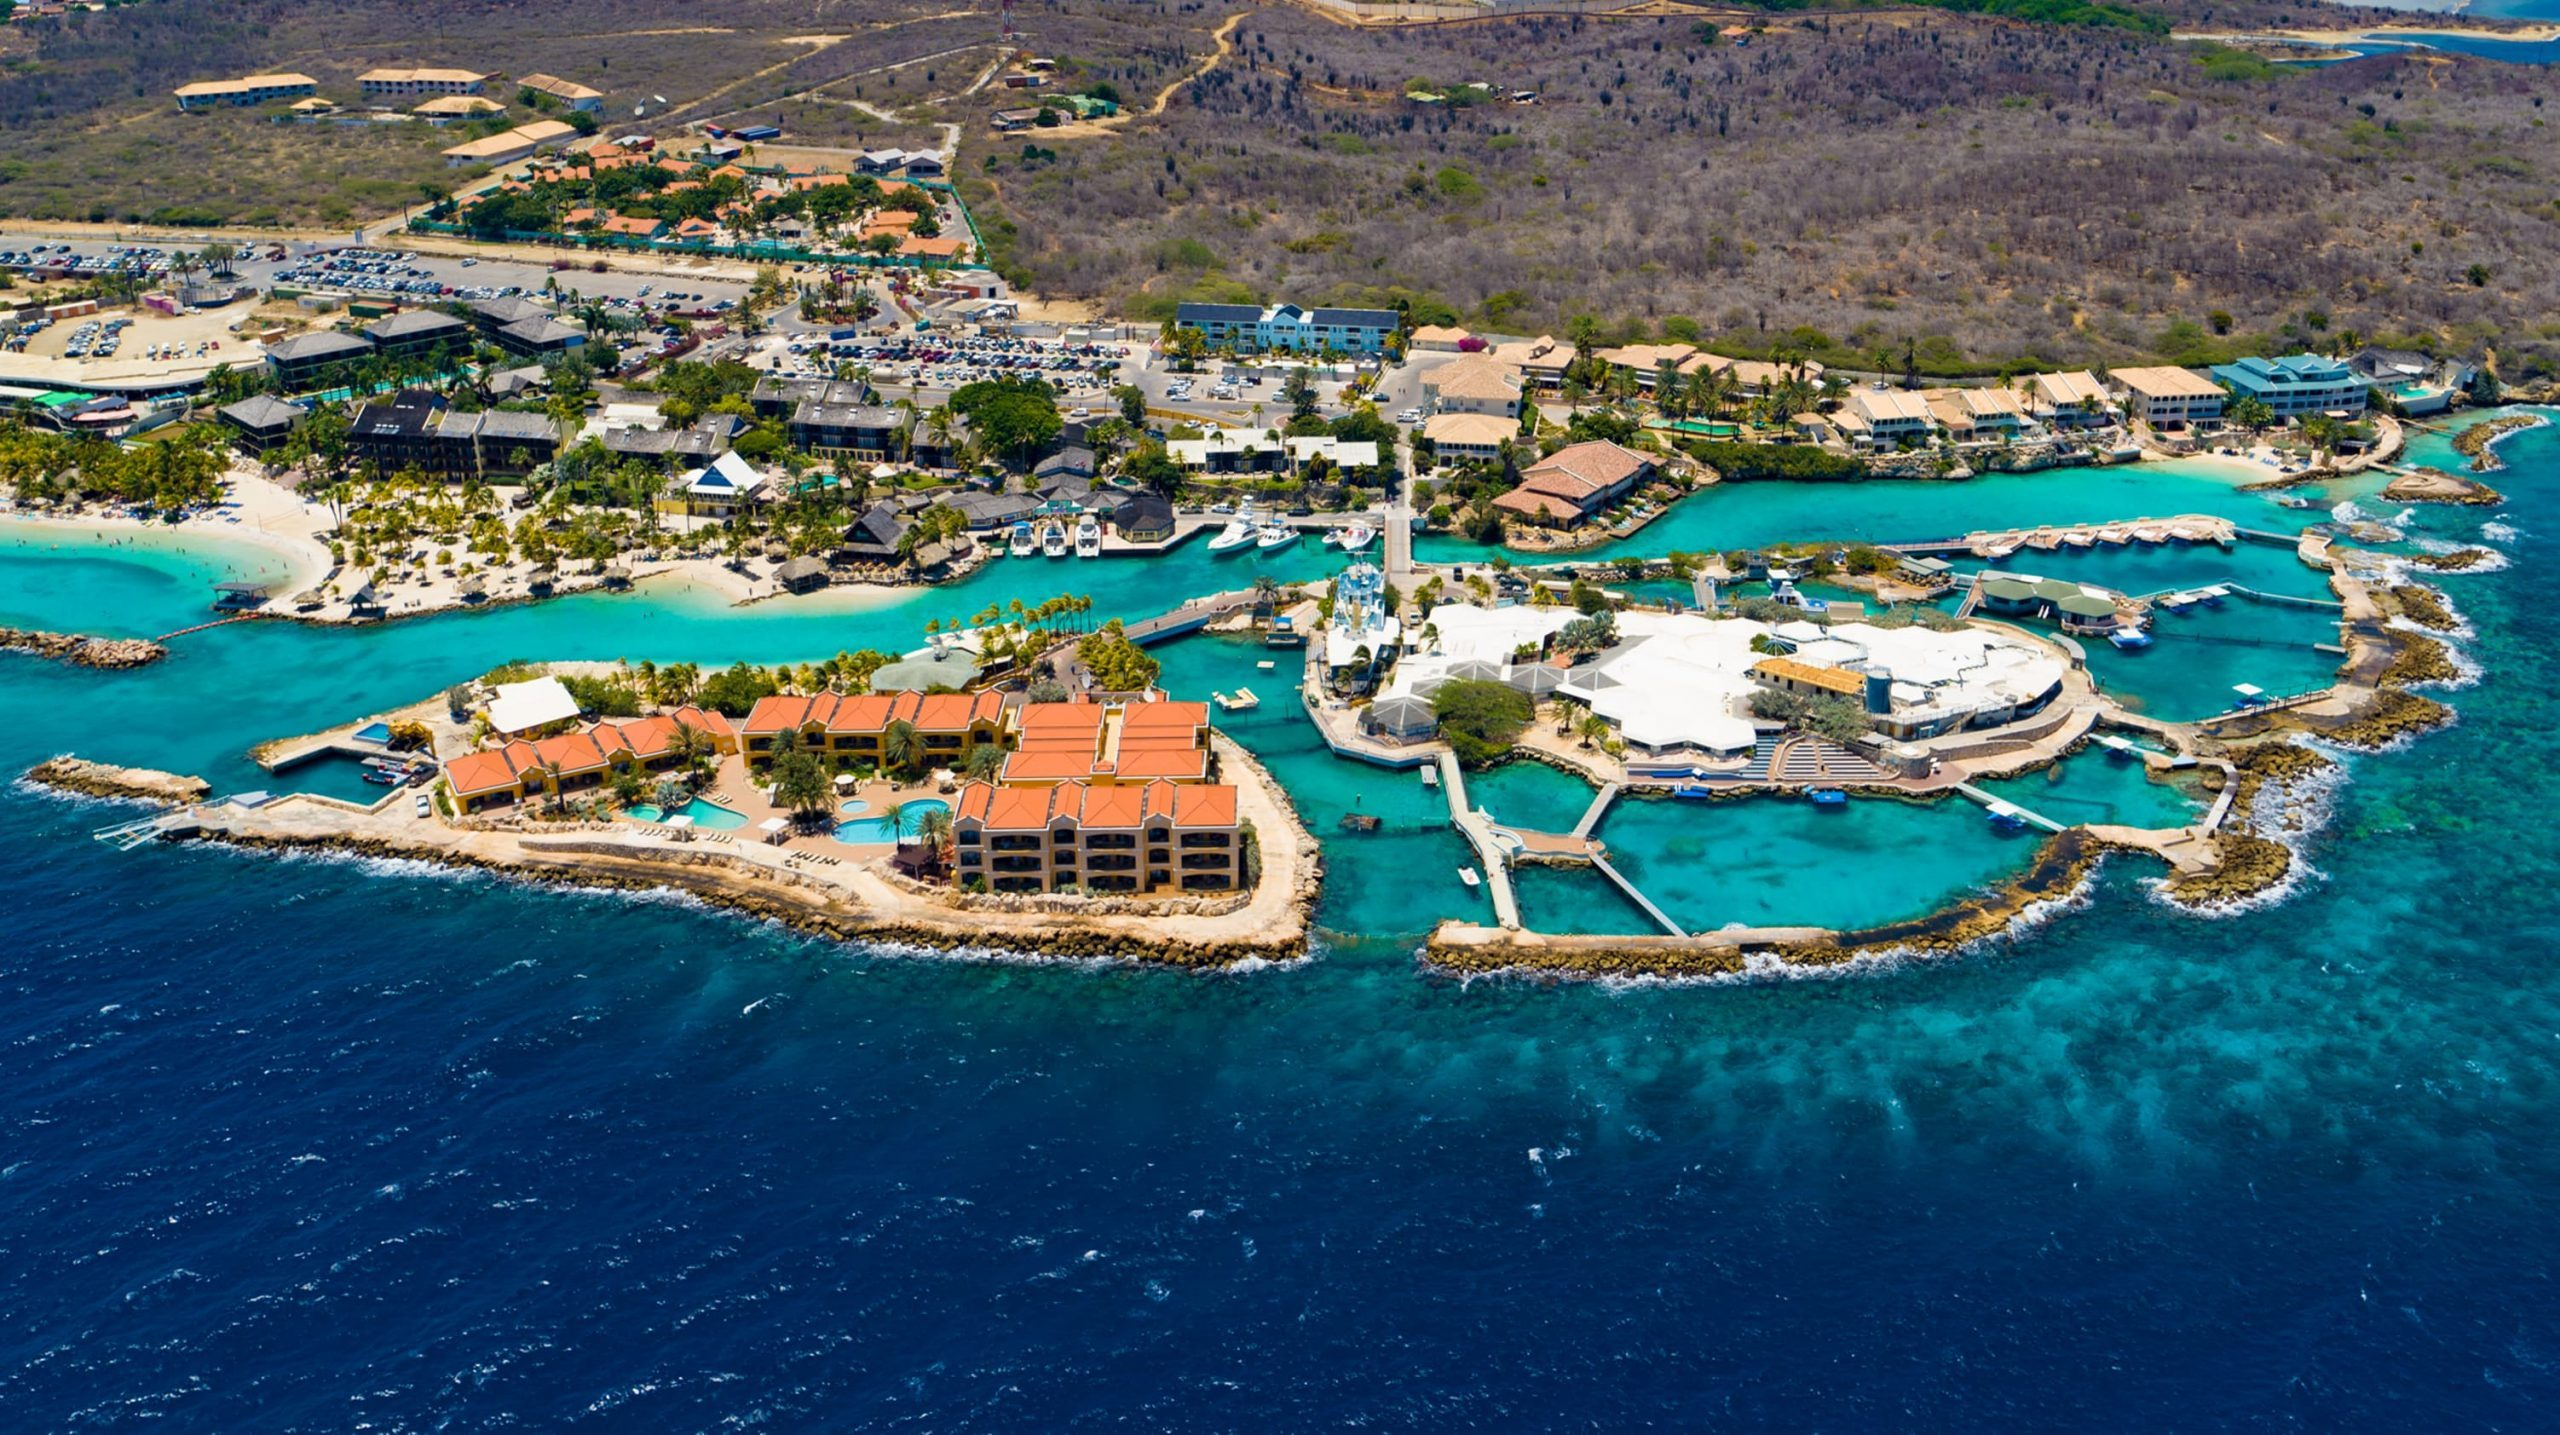 A bird view of the entire sea aquarium Curaçao founded in 1984 by Adrian 'Dutch' Schrier celebrating its 35th anniversary.